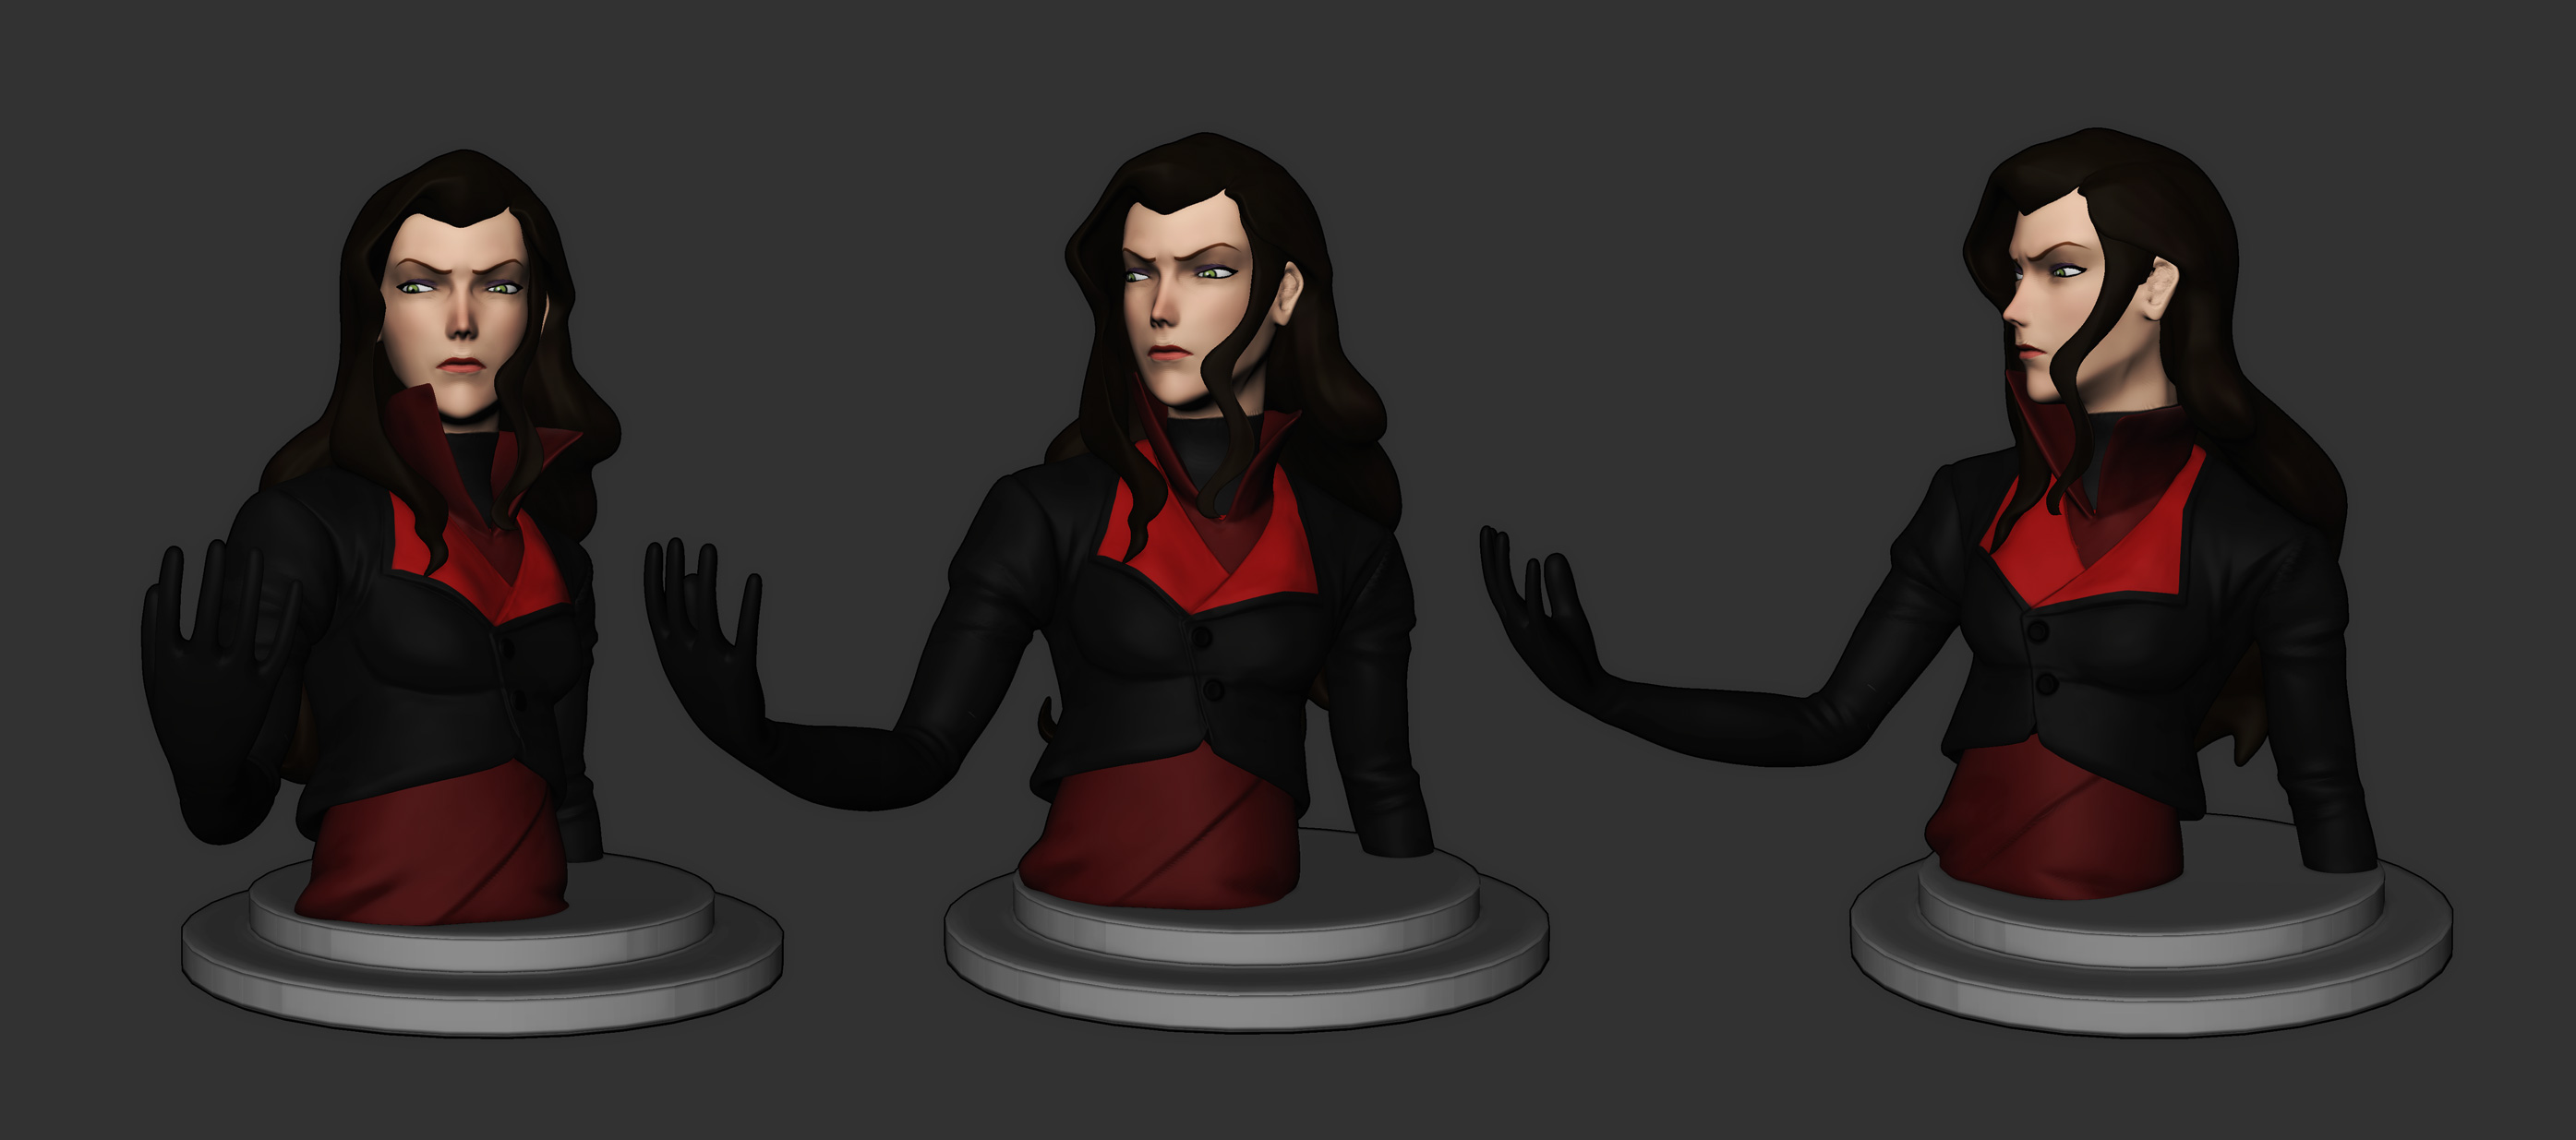 _wip_2__asami_sato___the_legend_of_korra_by_yuliuskrisna-d8c4fzm.jpg